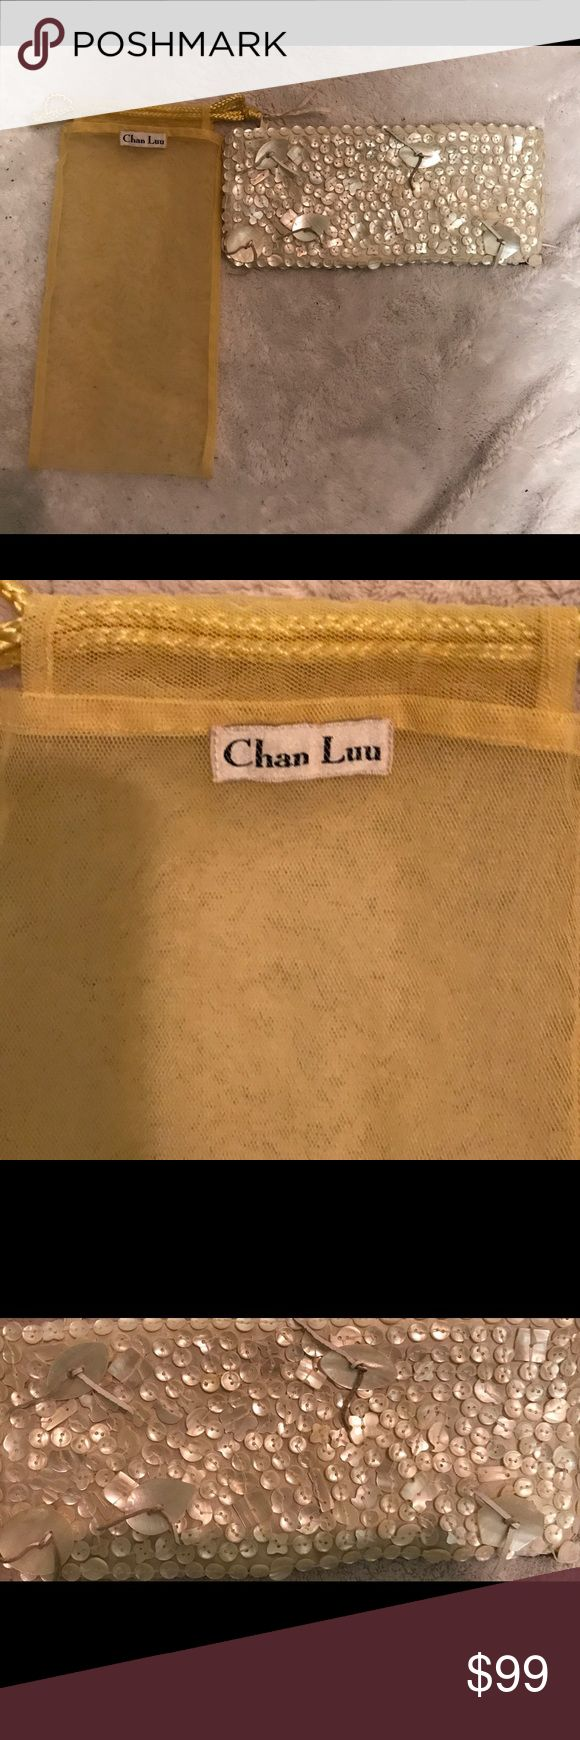 Authentic Chan Lu baguette 👛 Irradecent shells sewn on baguette, used a couple of times. Great condition! Chan Luu Bags Clutches & Wristlets